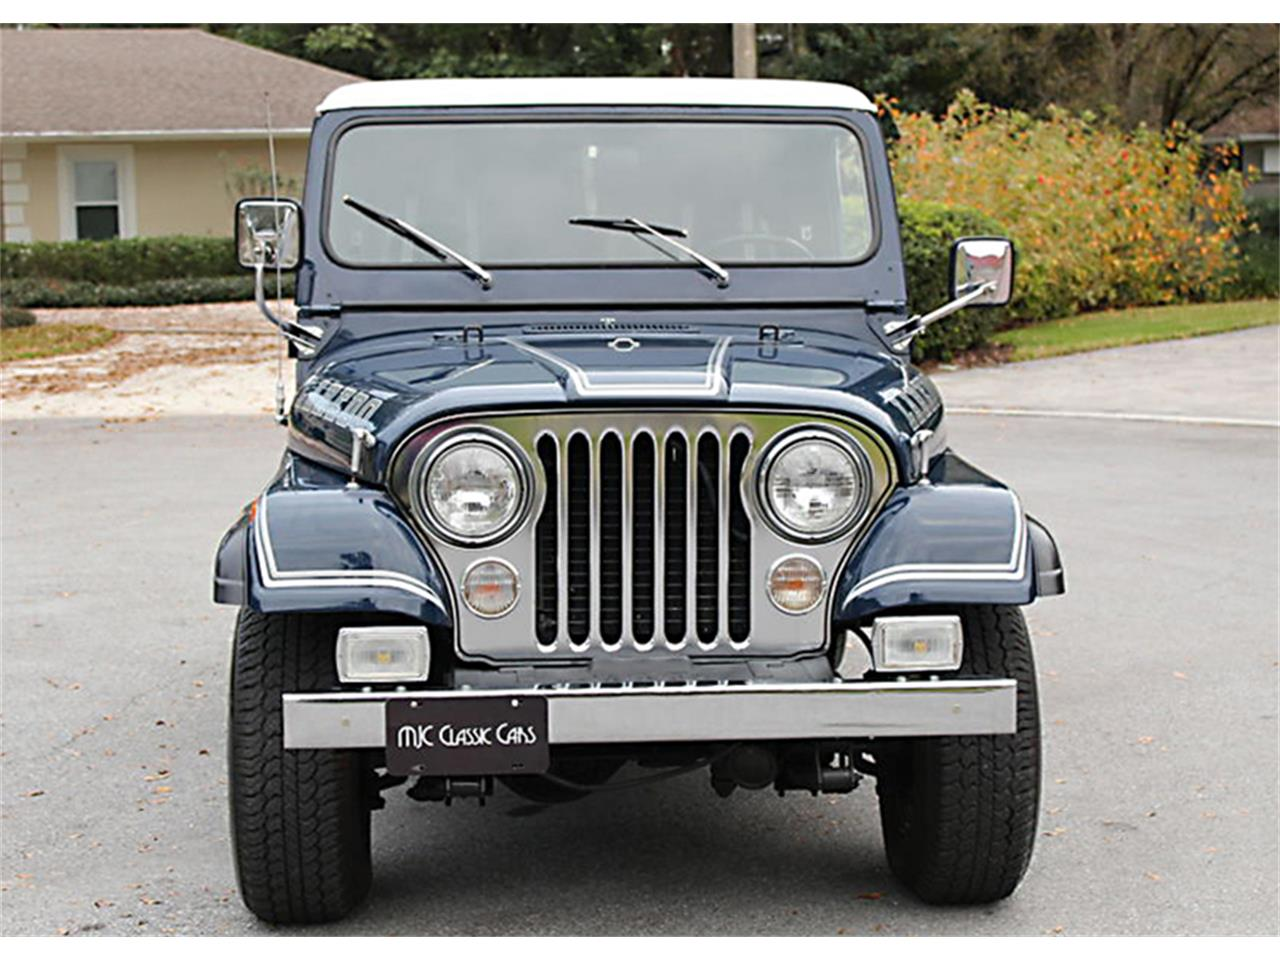 Large Picture of '81 Jeep CJ7 located in Lakeland Florida - $39,500.00 - PH46